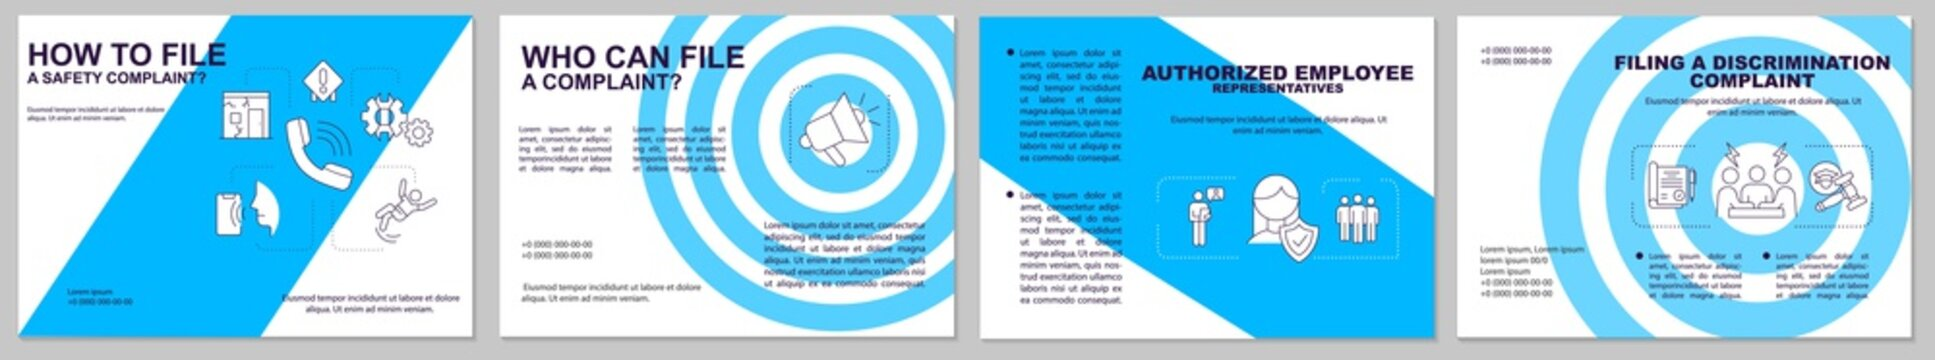 Safety complaints filing brochure template. Workplace violence. Flyer, booklet, leaflet print, cover design with linear icons. Vector layouts for magazines, annual reports, advertising posters